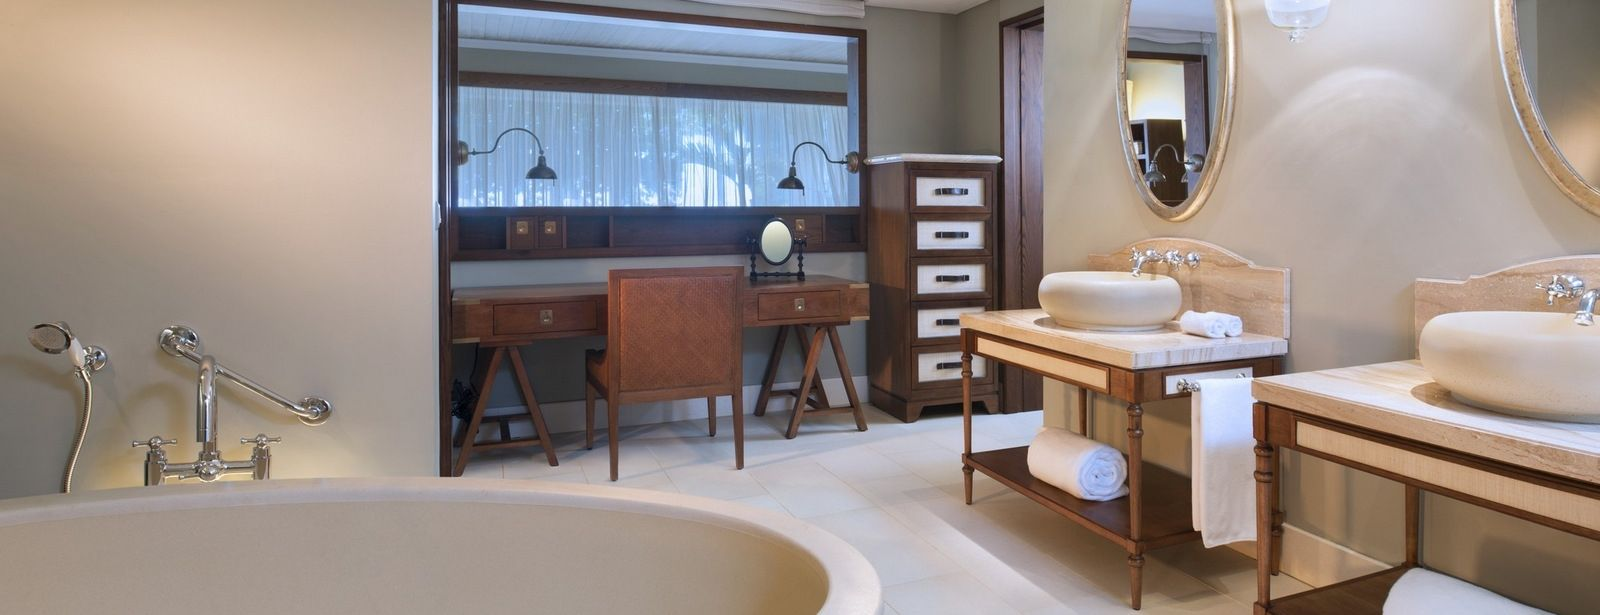 St. Regis Mauritius Beachfront Junior Suite bathroom